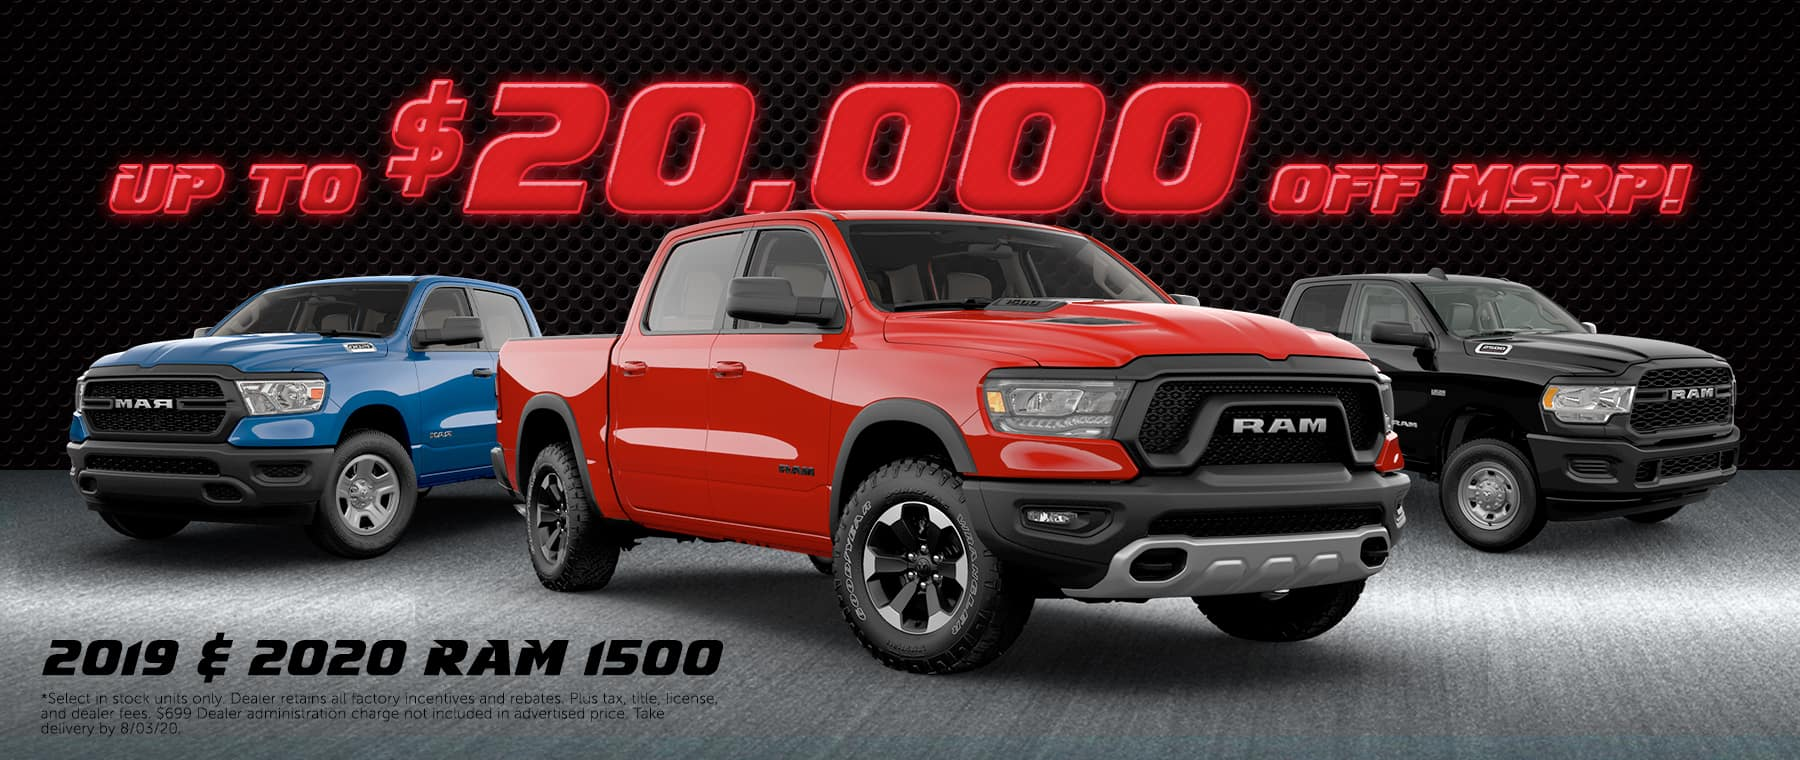 2020 Ram 1500 up to $20,000 off MSRP